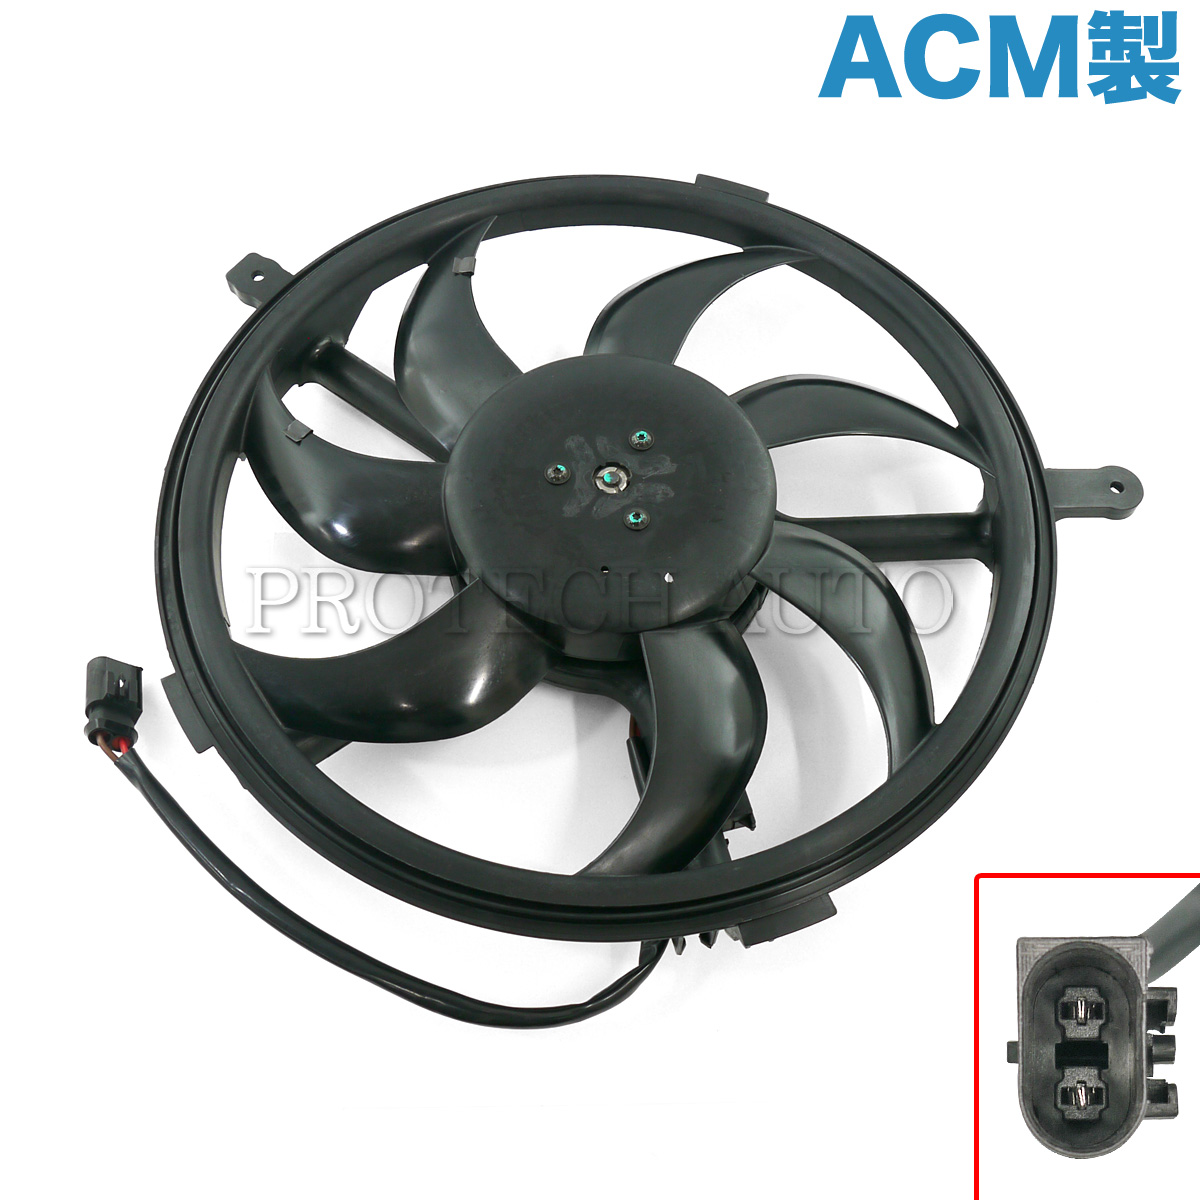 純正OEM ACM製 BMW MINI ミニ R56 R55 R57 R58 R59 R60 R61 JCW Cooper ALL4 CooperS One 電動ファン/ラジエーターファン/ブロアファン 17422754854【あす楽対応】